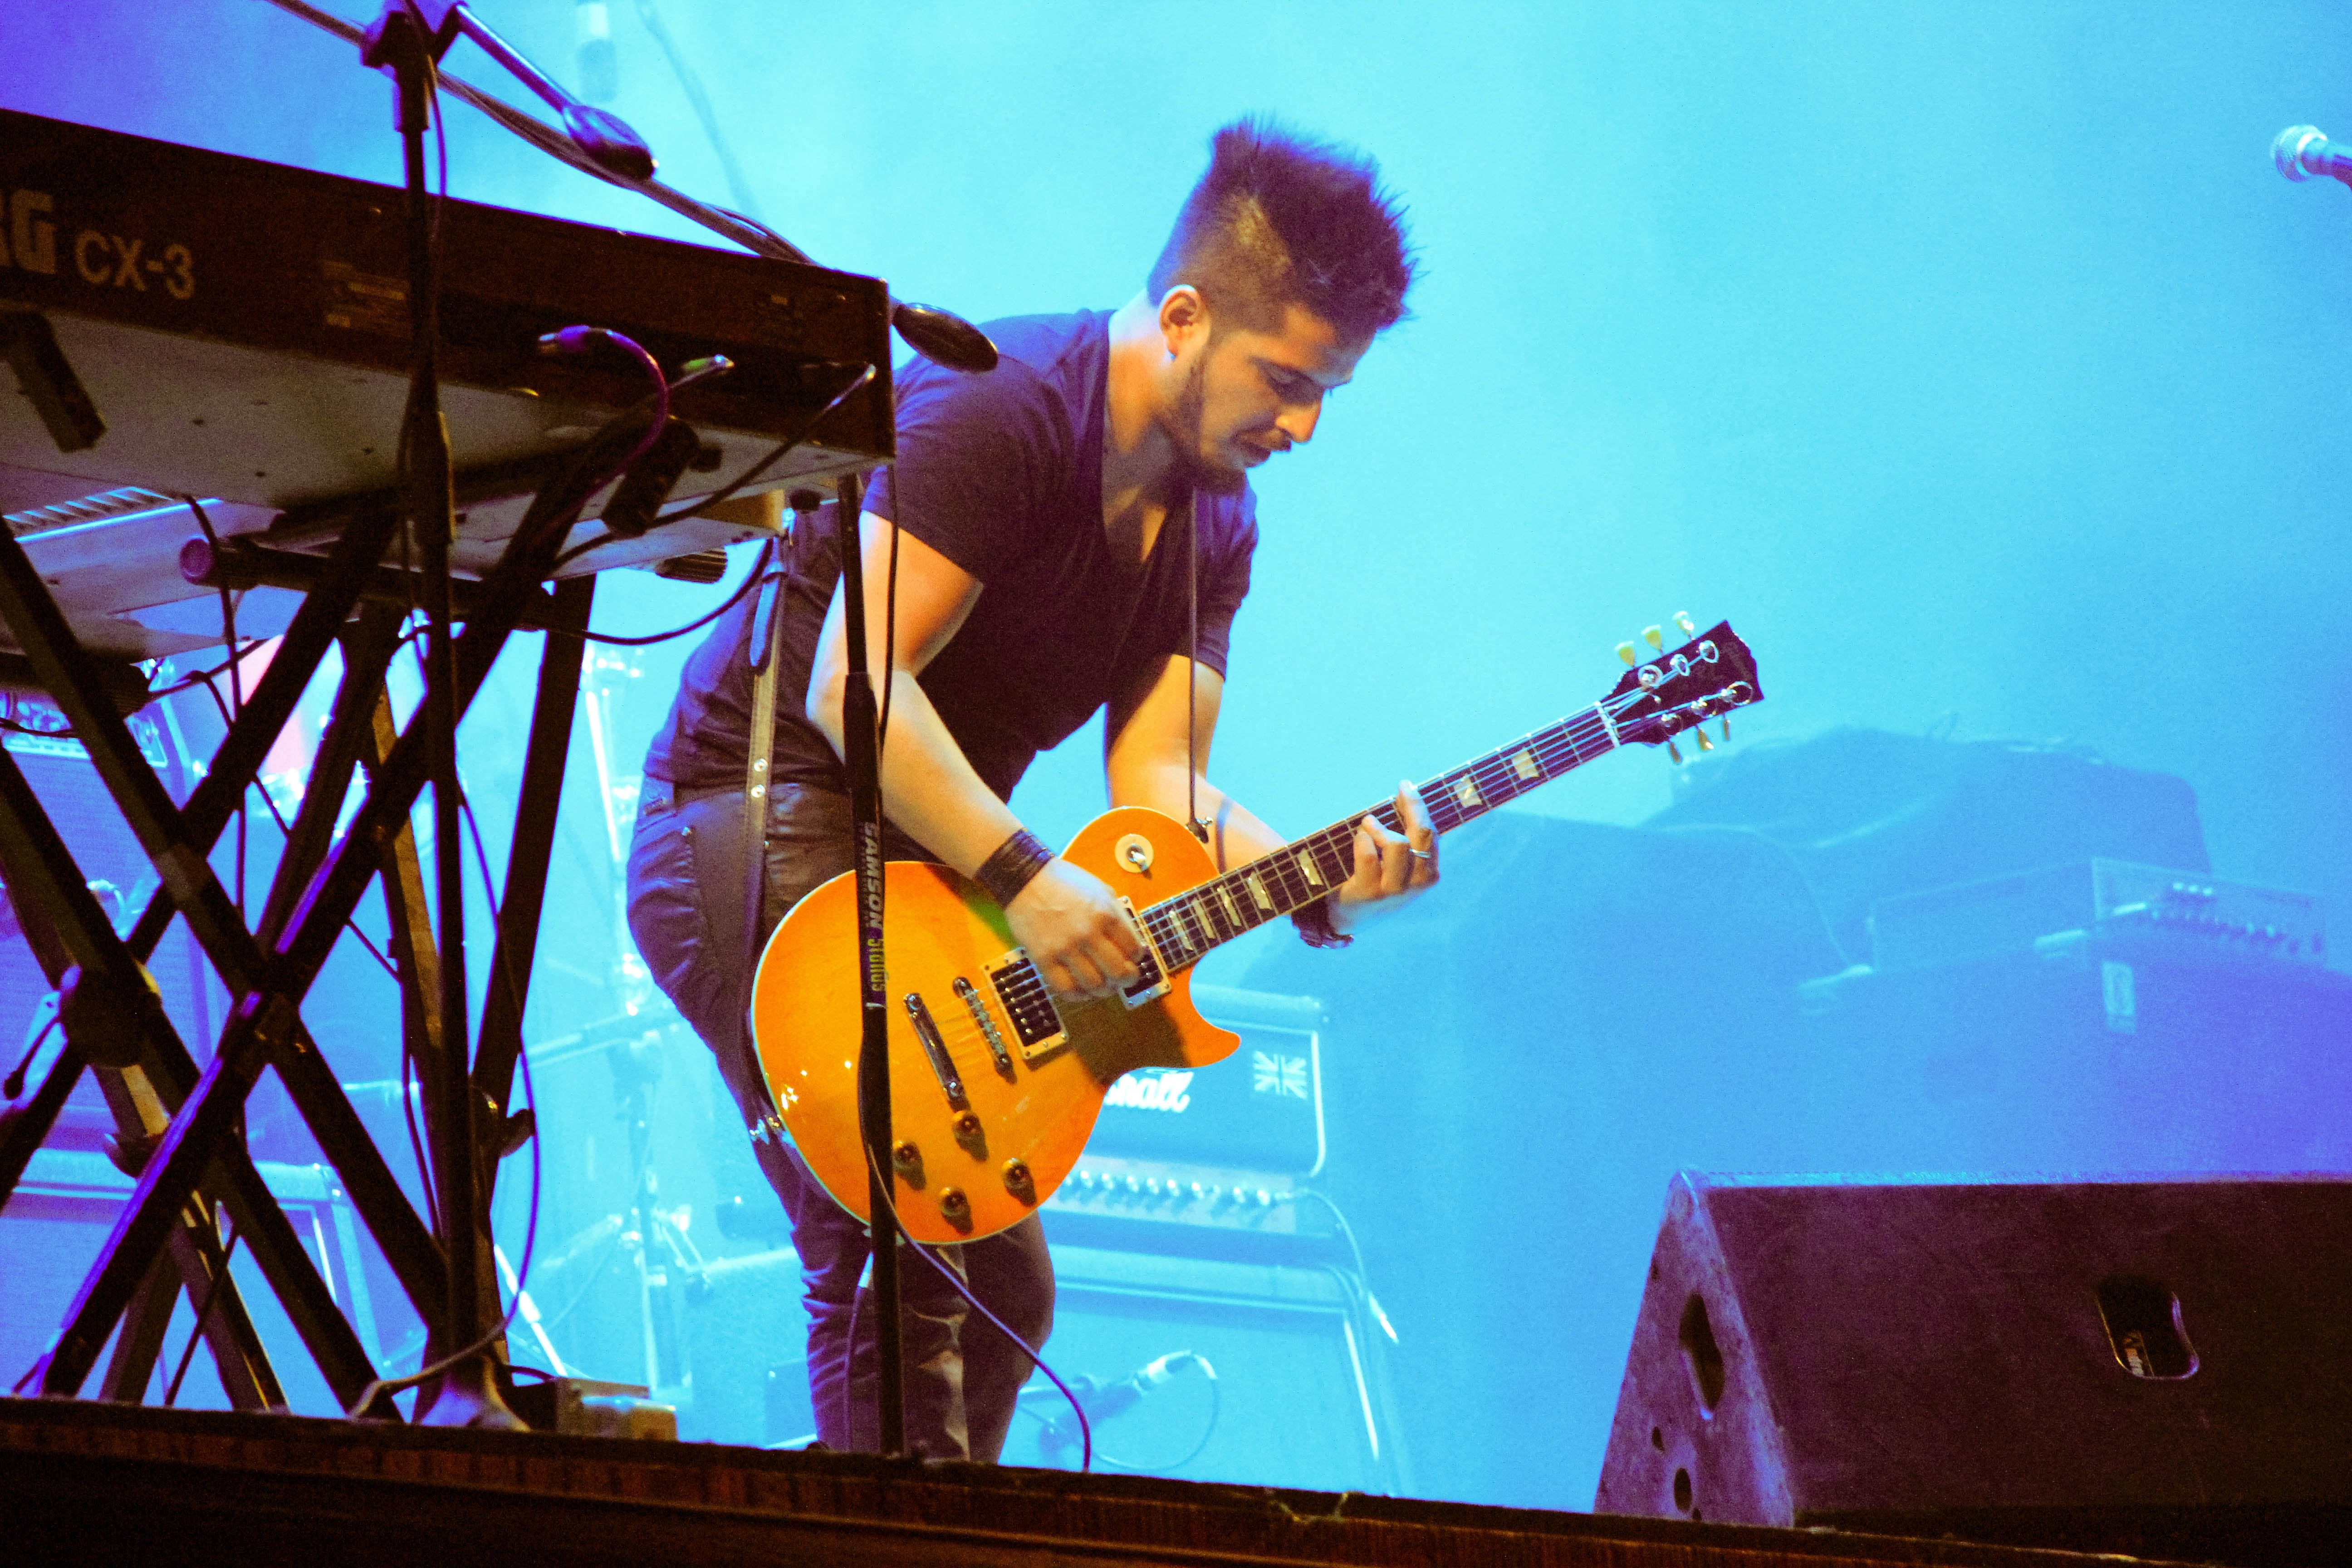 play guitar on stage